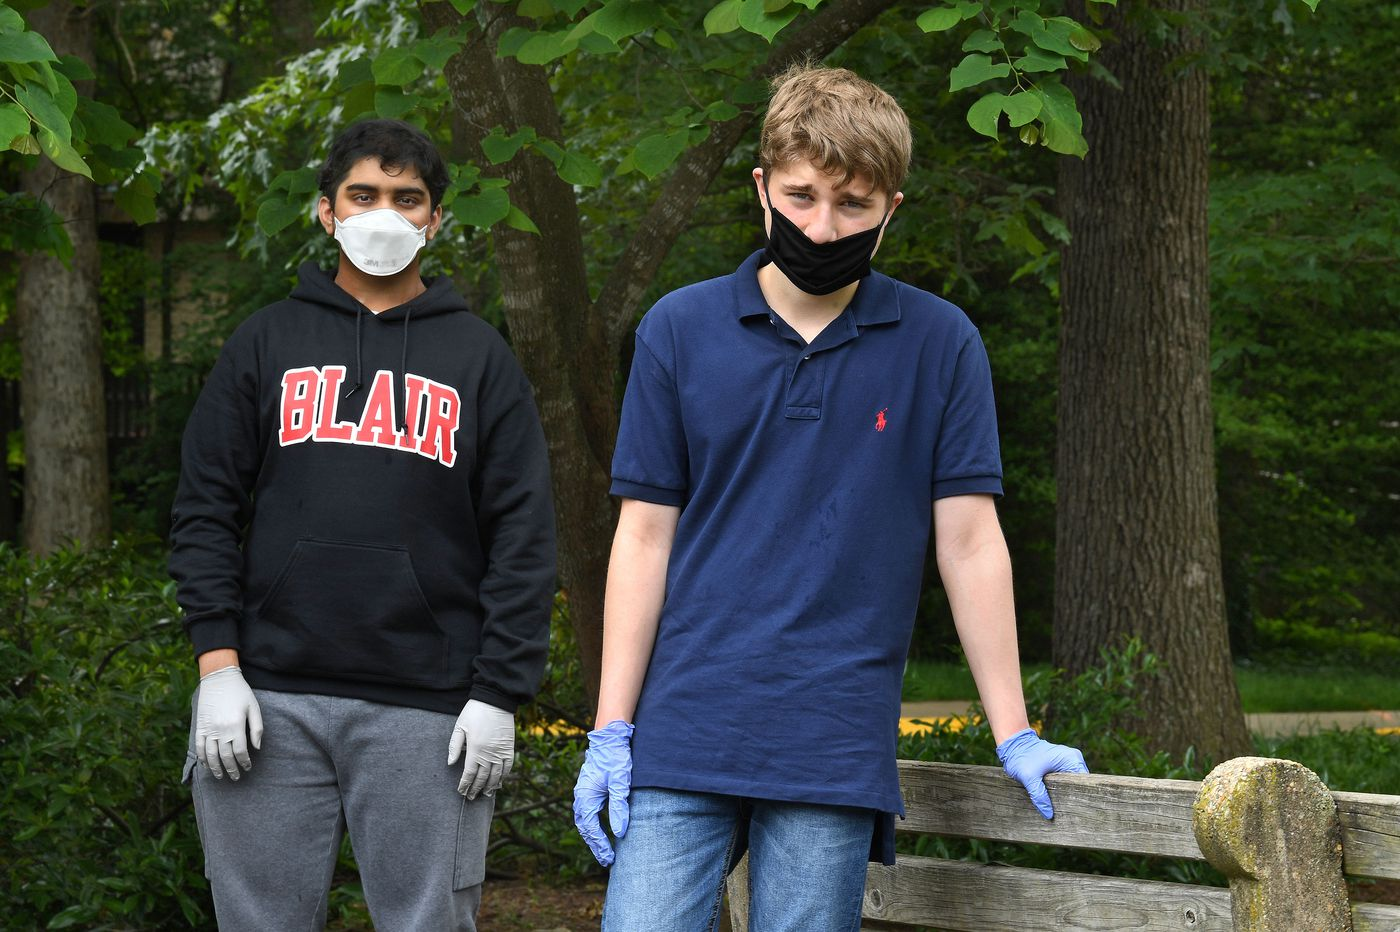 Two Maryland teens bought groceries for their grandparents during the pandemic. Soon it became a national volunteer effort.